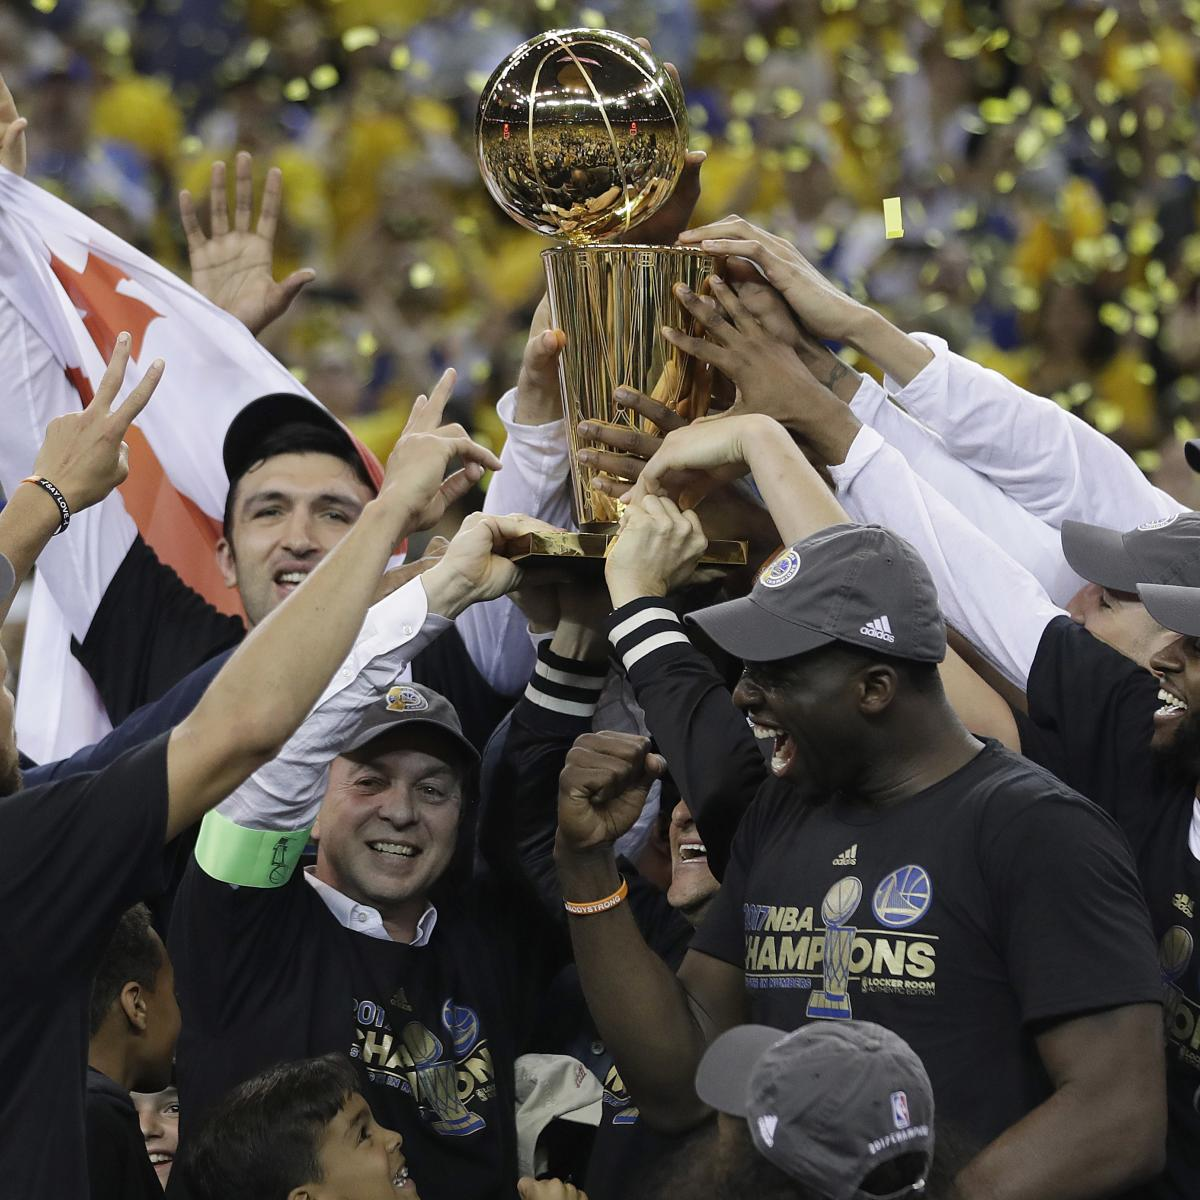 Warriors Game Live Stream Free Espn: Warriors Parade 2017: Start Time, Live-Stream Schedule For